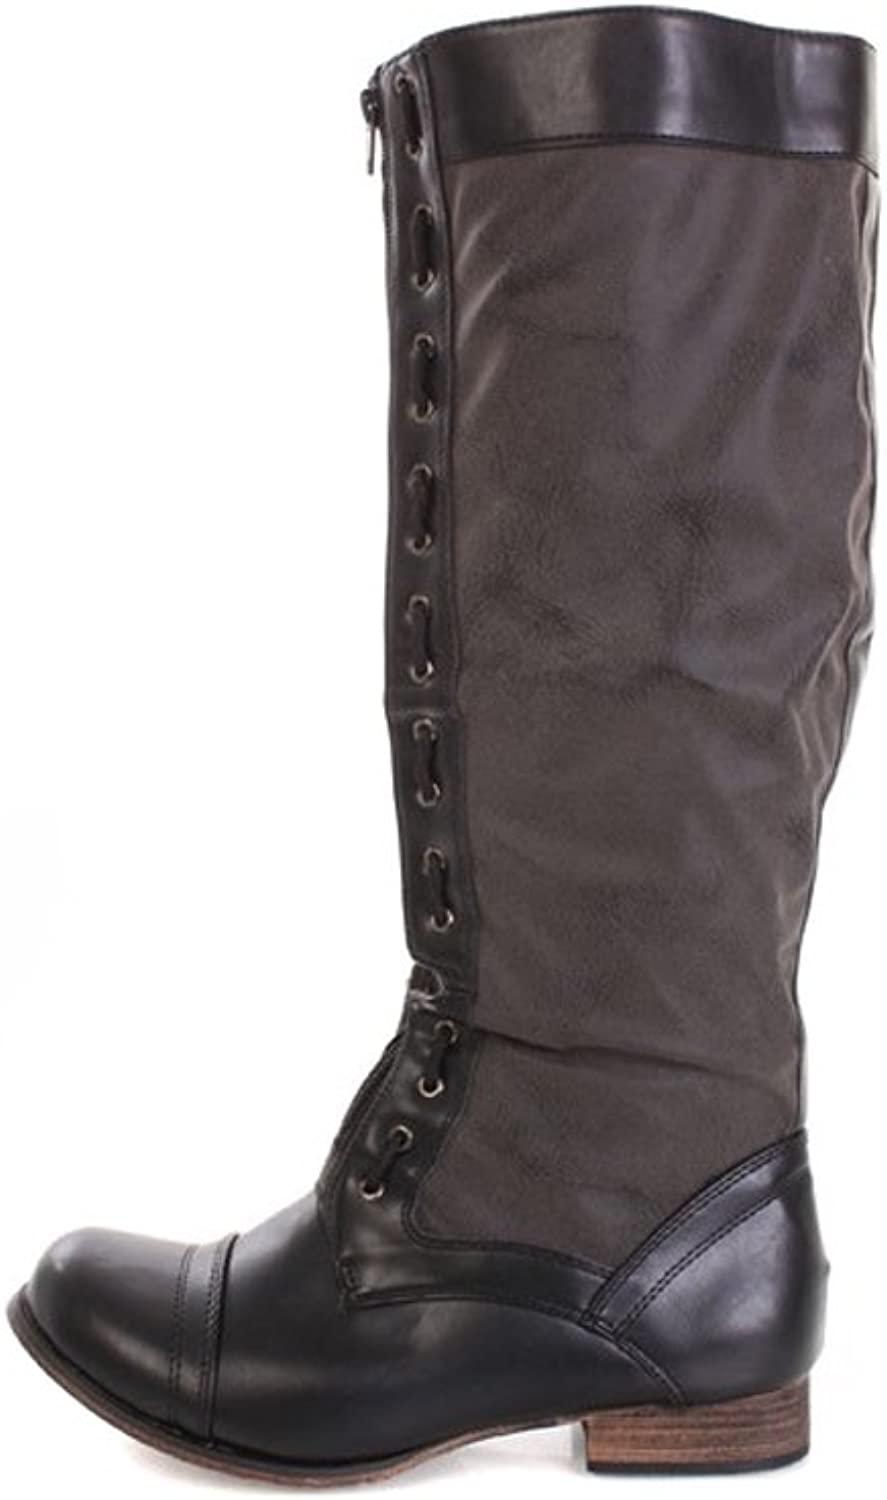 Fourever Funky Black Faux Distressed Leather Woven Trim Zipper Front Riding Boots